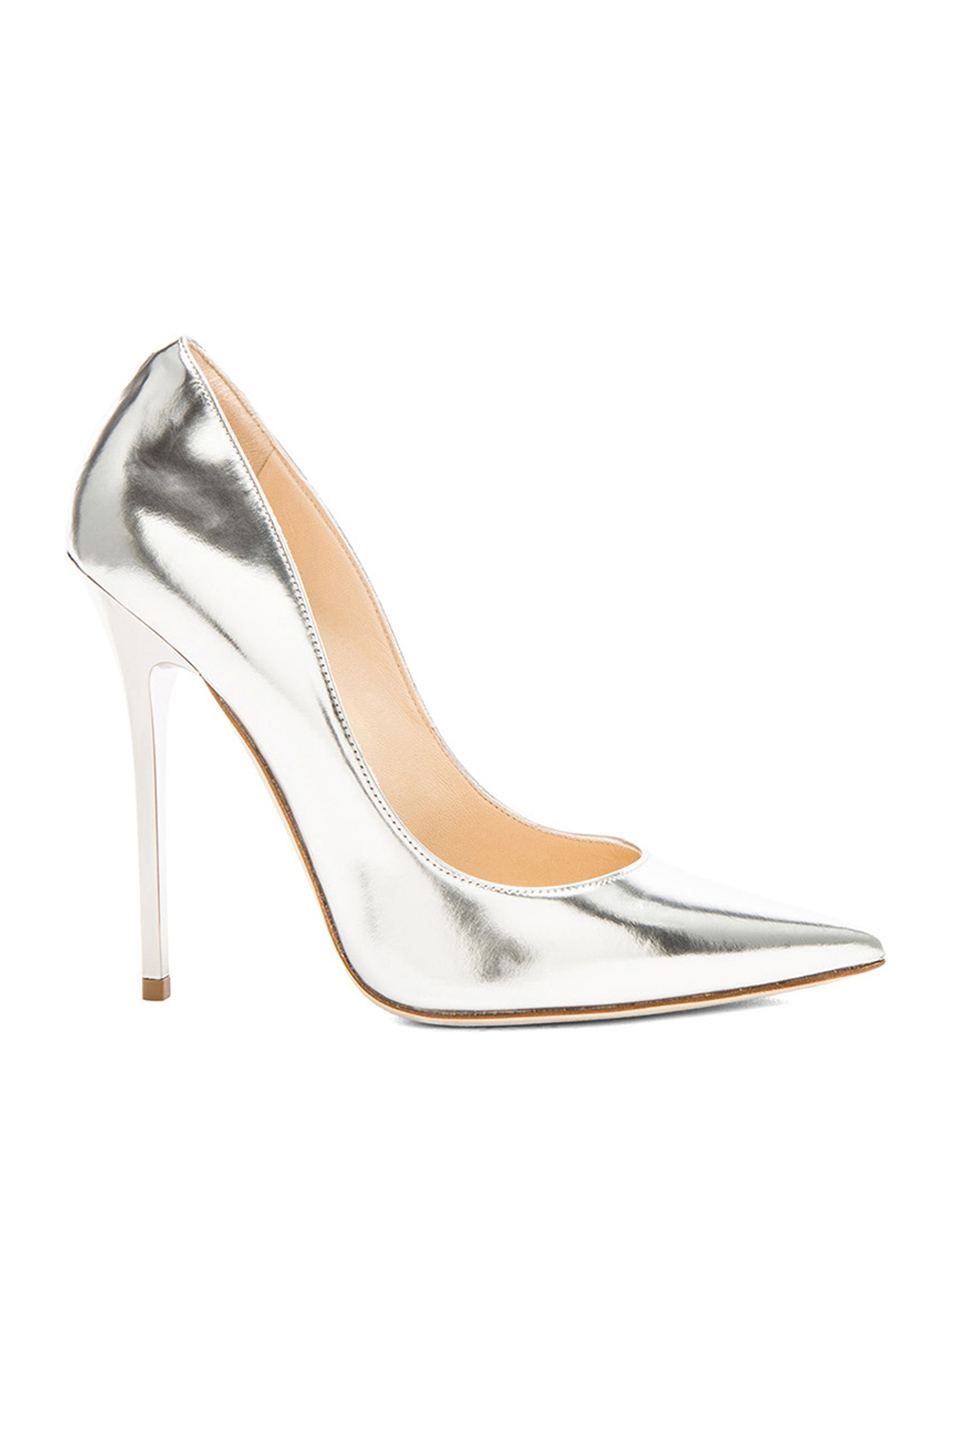 Anouk 120 Mirror Leather Pumps by Jimmy Choo, available on fwrd.com for $508 Olivia Culpo Shoes Exact Product